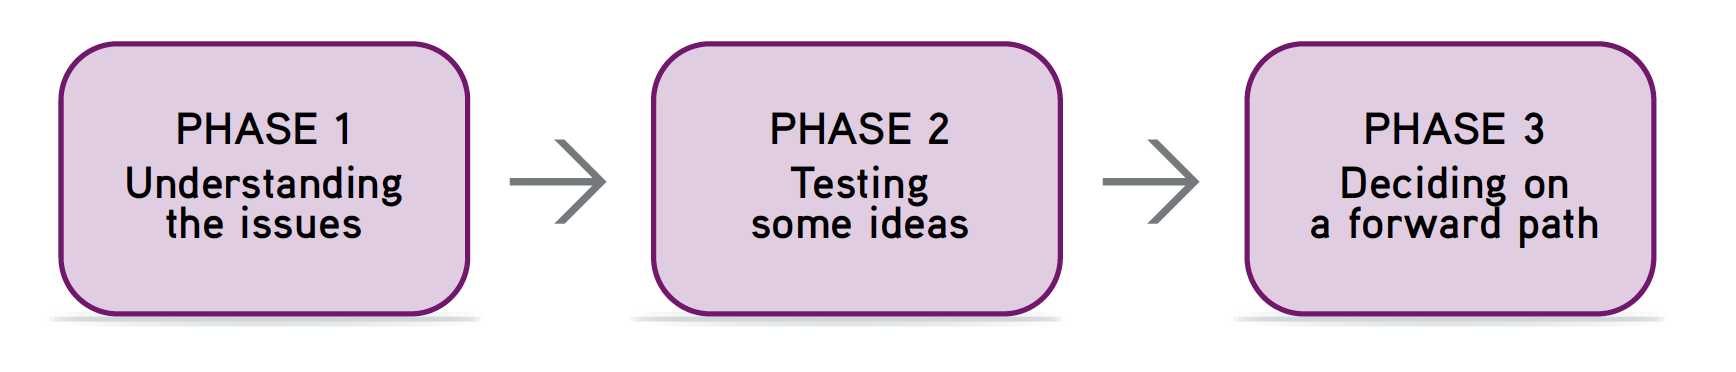 """Picture of """"Packaging the Work"""" flow chart. Phase 1 Understanding the issues; Phase 2 Testing some ideas; and Phase 3 Deciding on a forward path."""